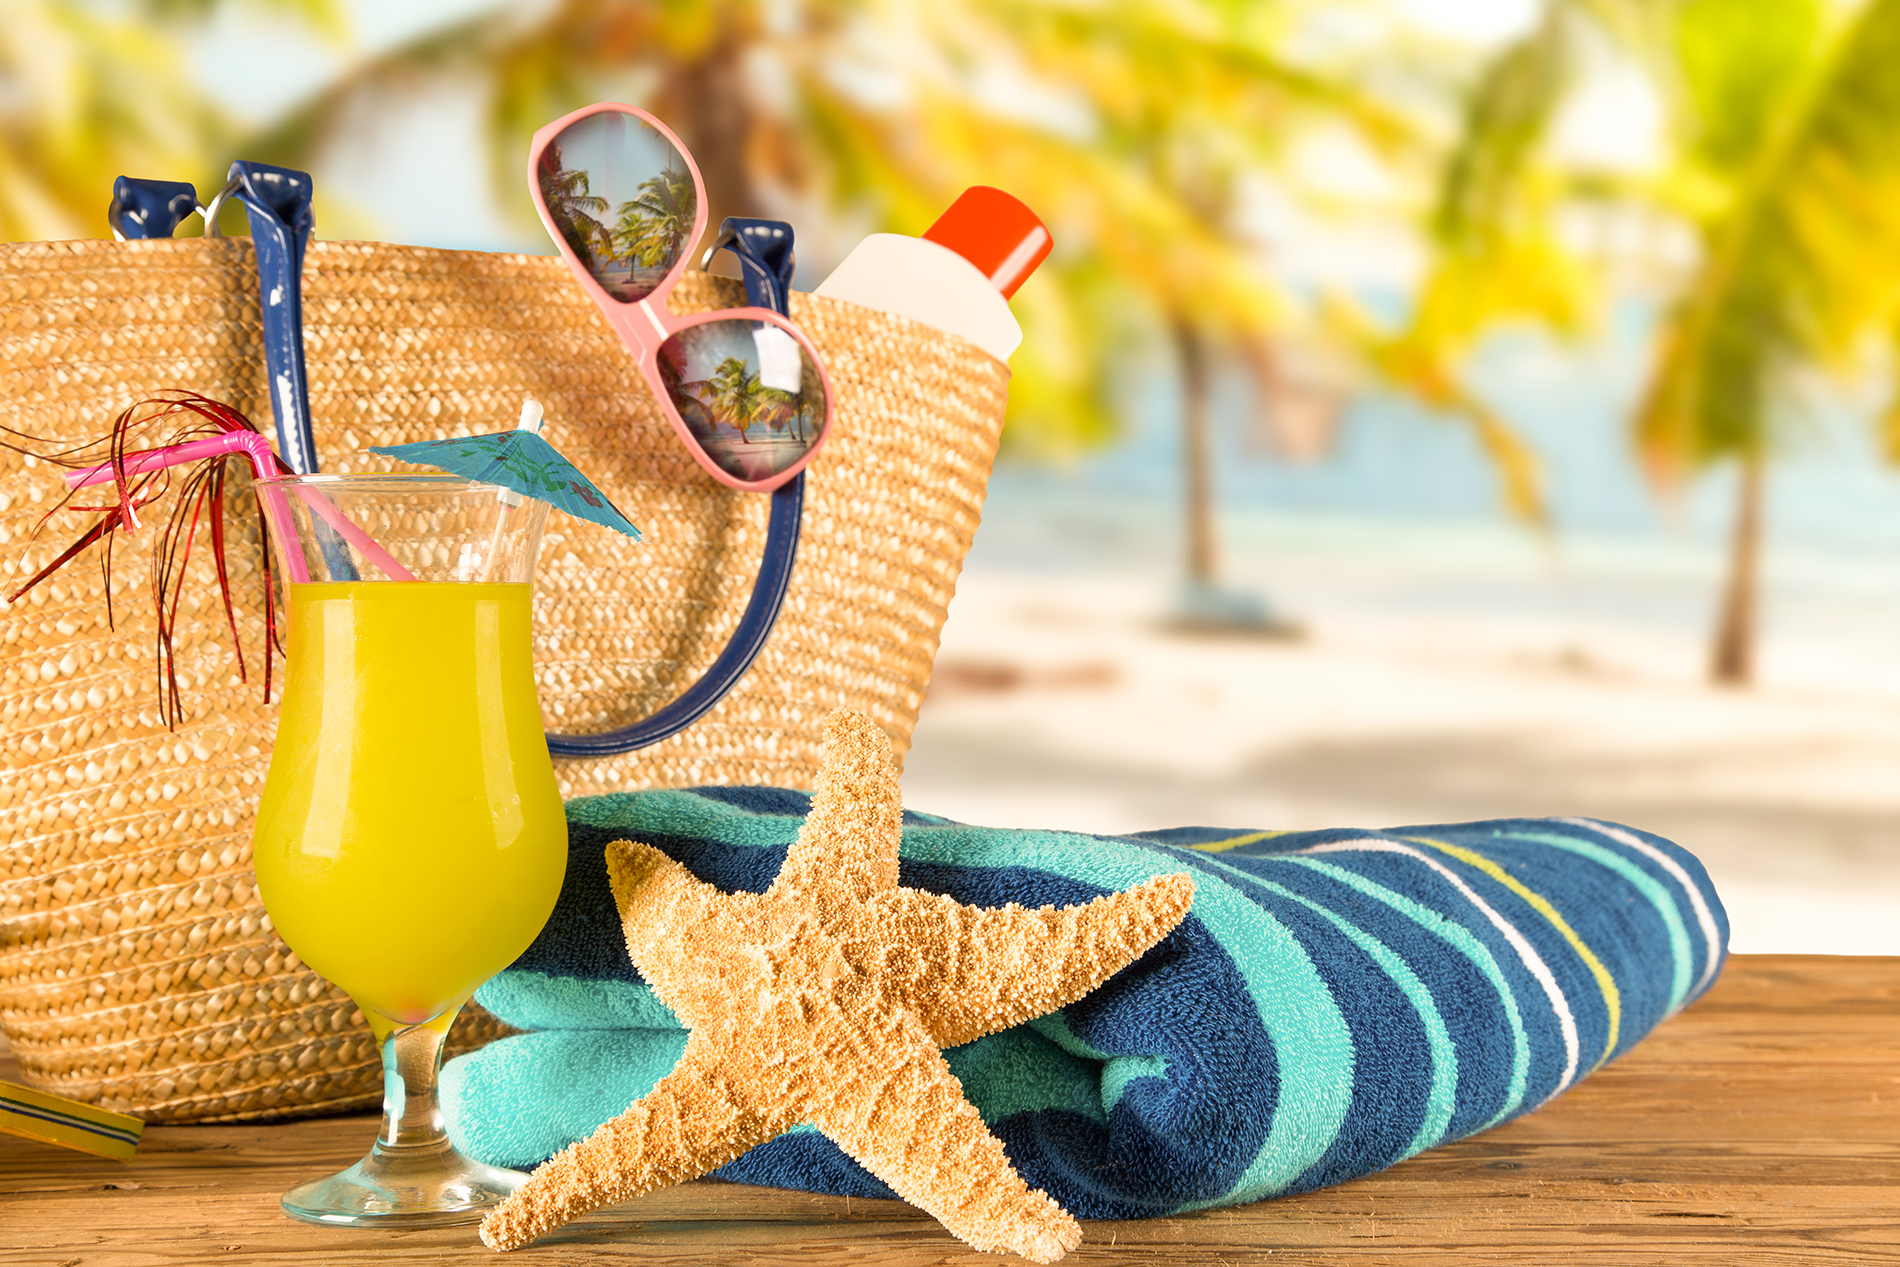 Towel starfish and juice glasses 53728